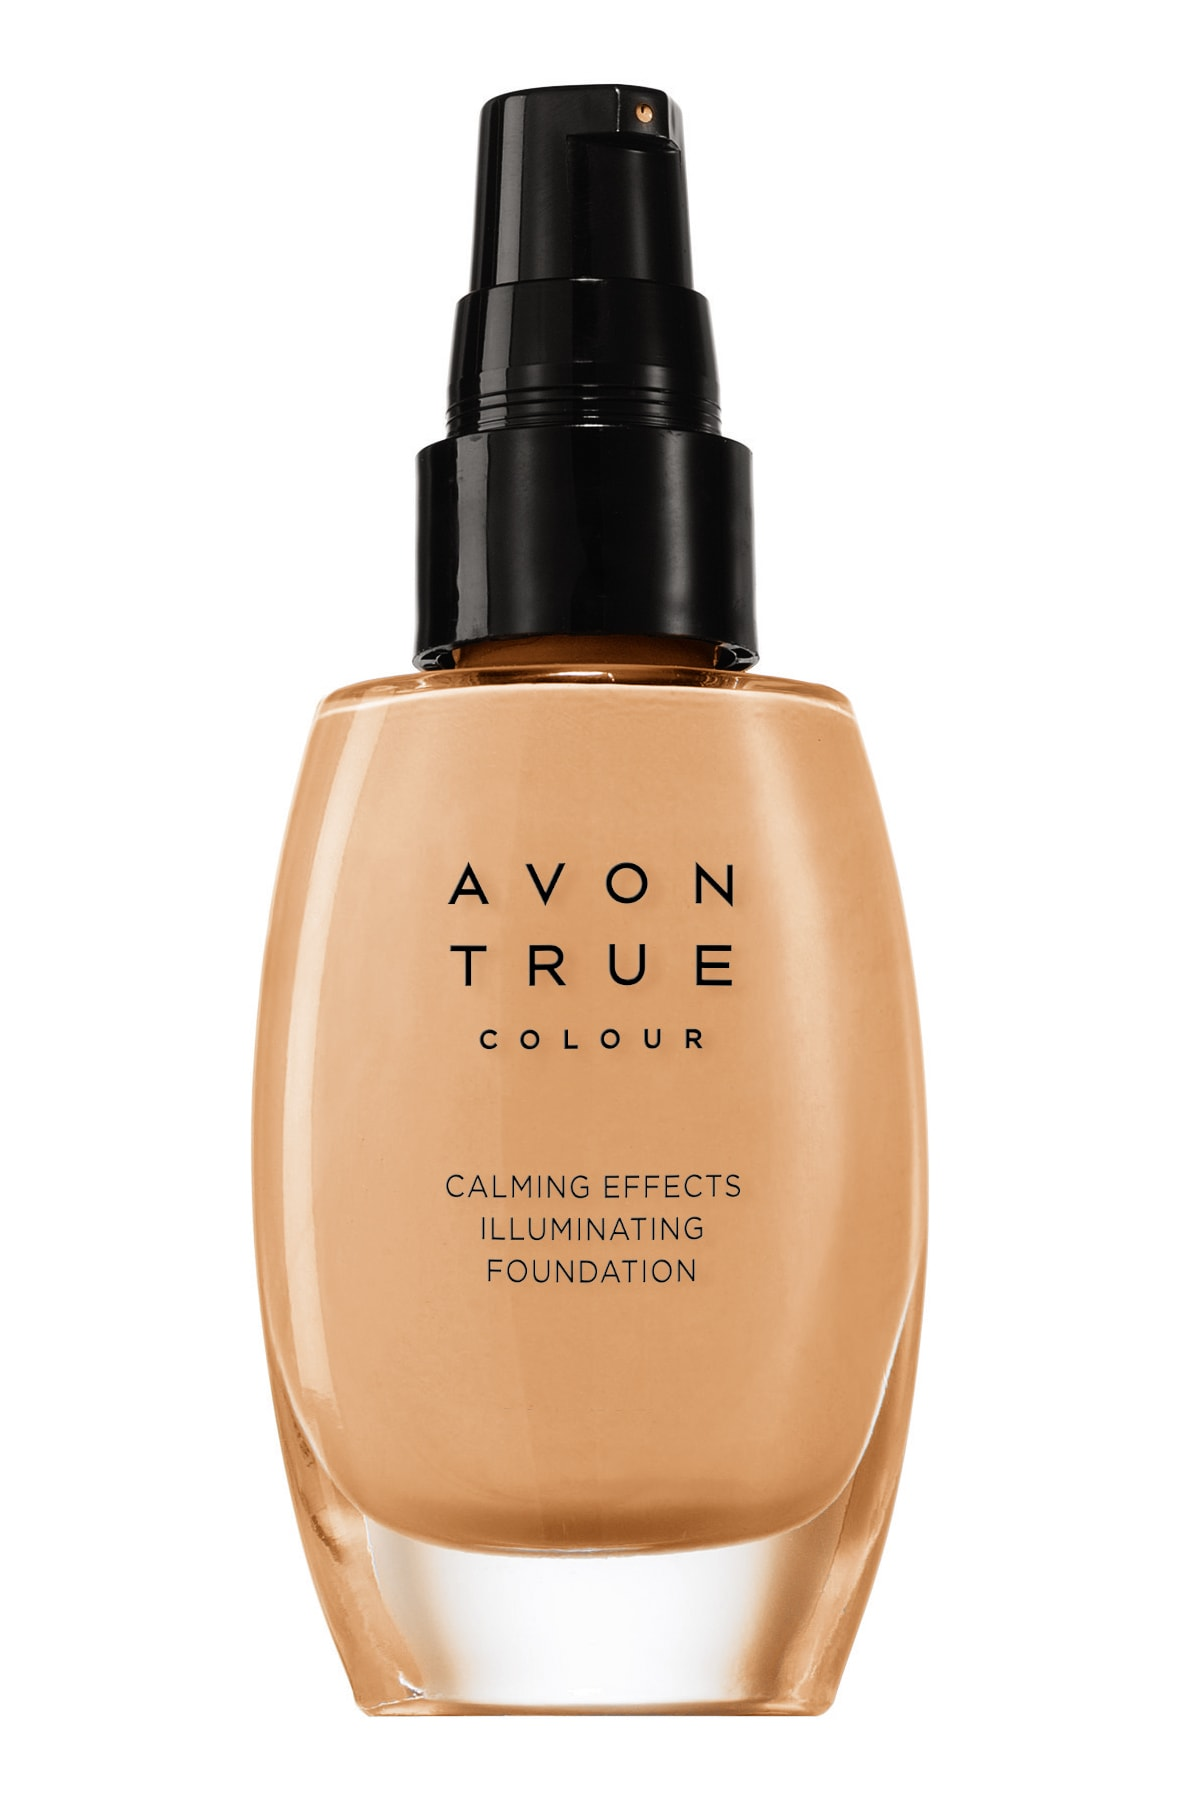 AVON Fondöten - Calming Effects Mattifying Foundation Almond 30 ml 8681298930310 1